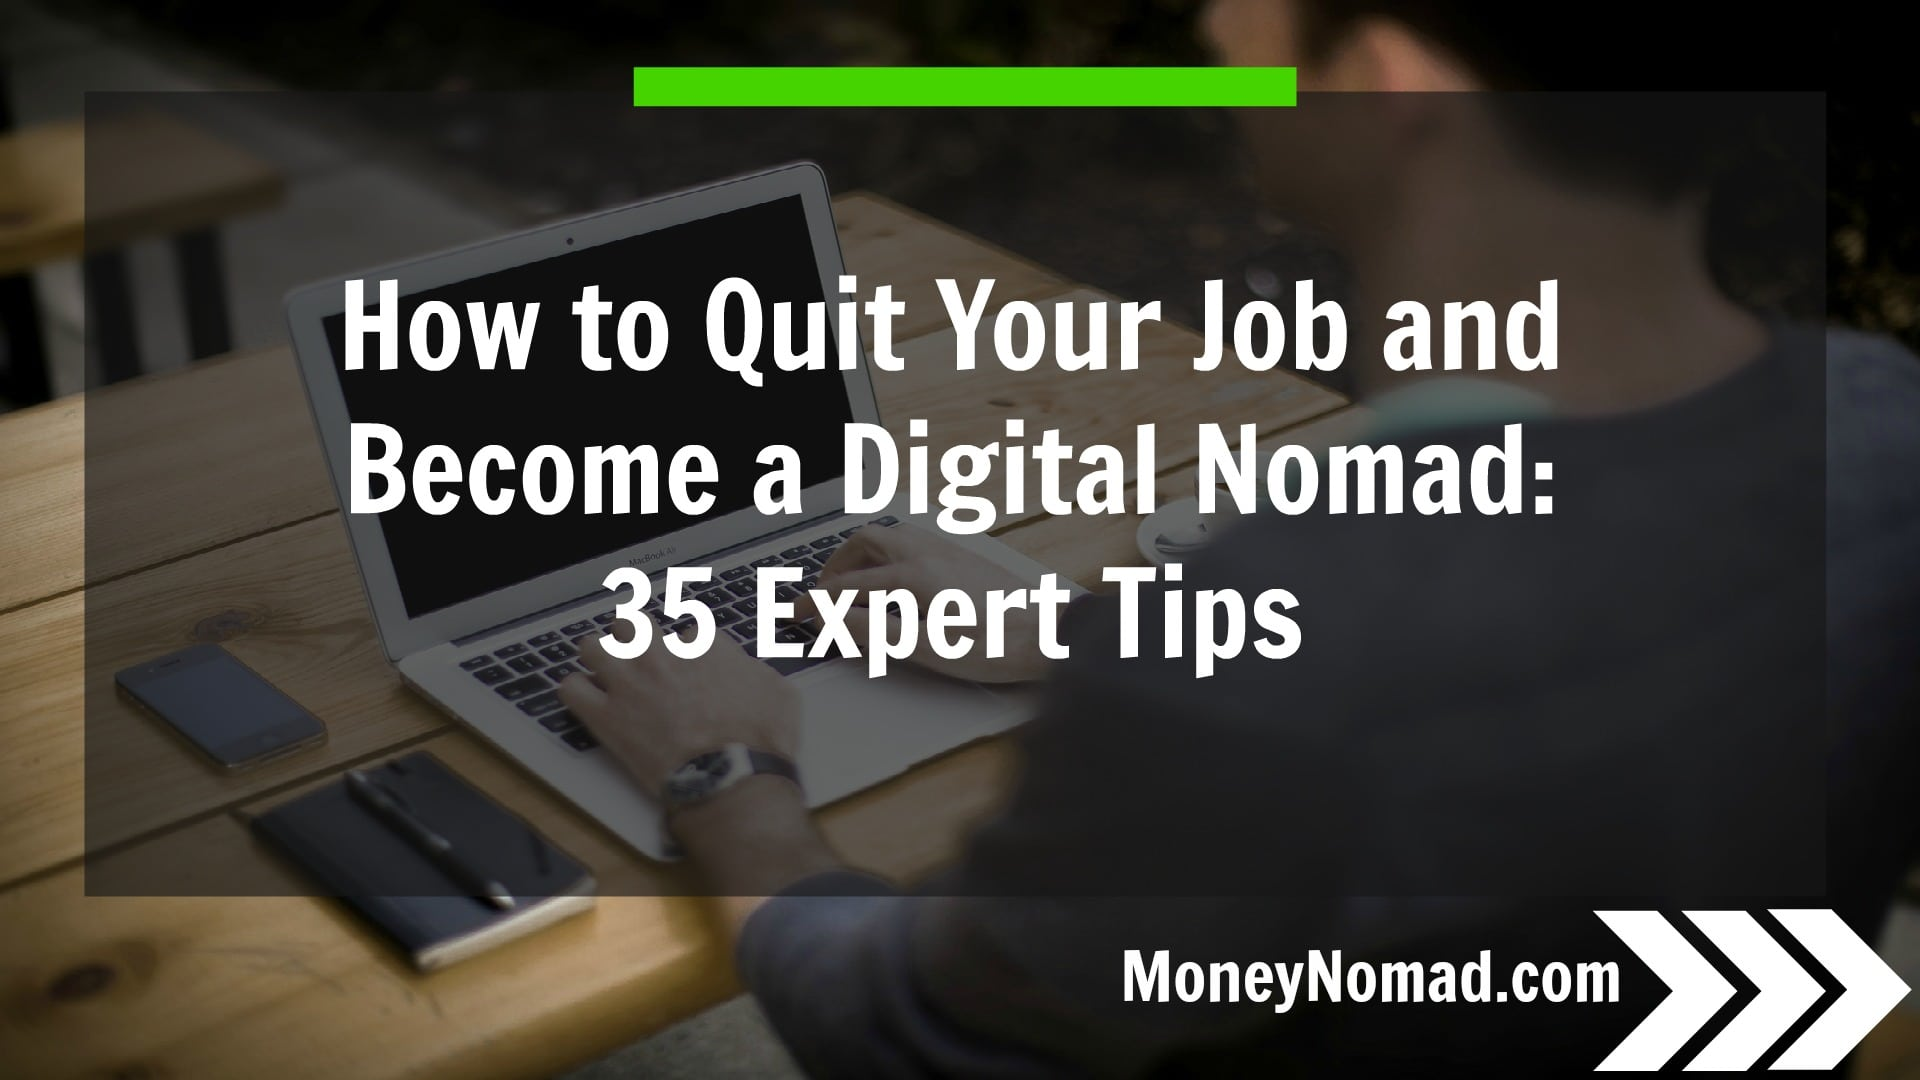 How to Quit Your Job and Become a Digital Nomad 35 Expert Tips